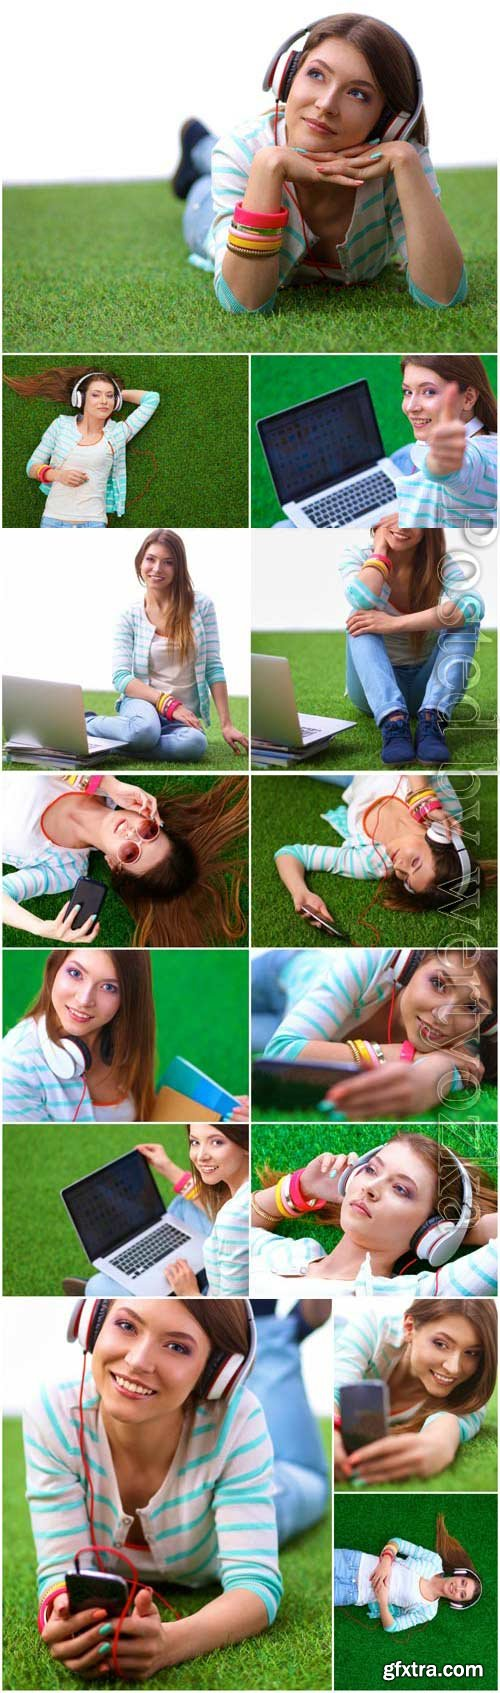 Girl with gadgets on green grass stock photo